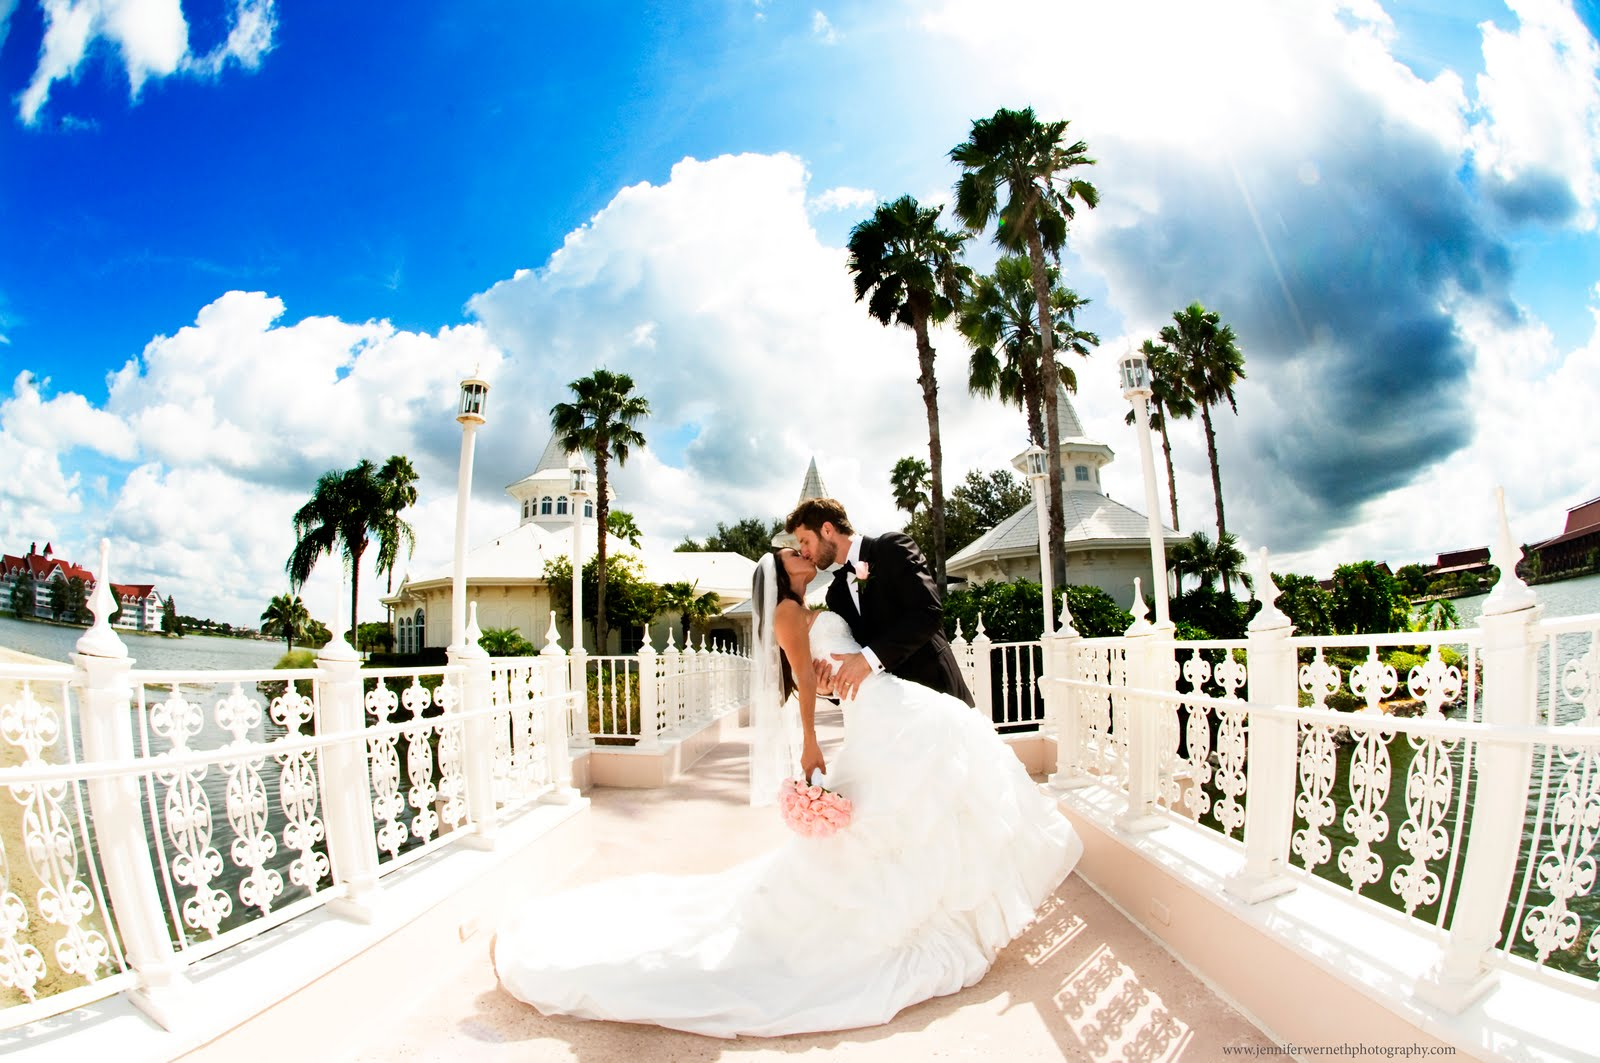 Ashley And Michael Were Married At The Walt Disney World Wedding Pavilion In Orlando Fl We Started Off Day Grand Floridian First For